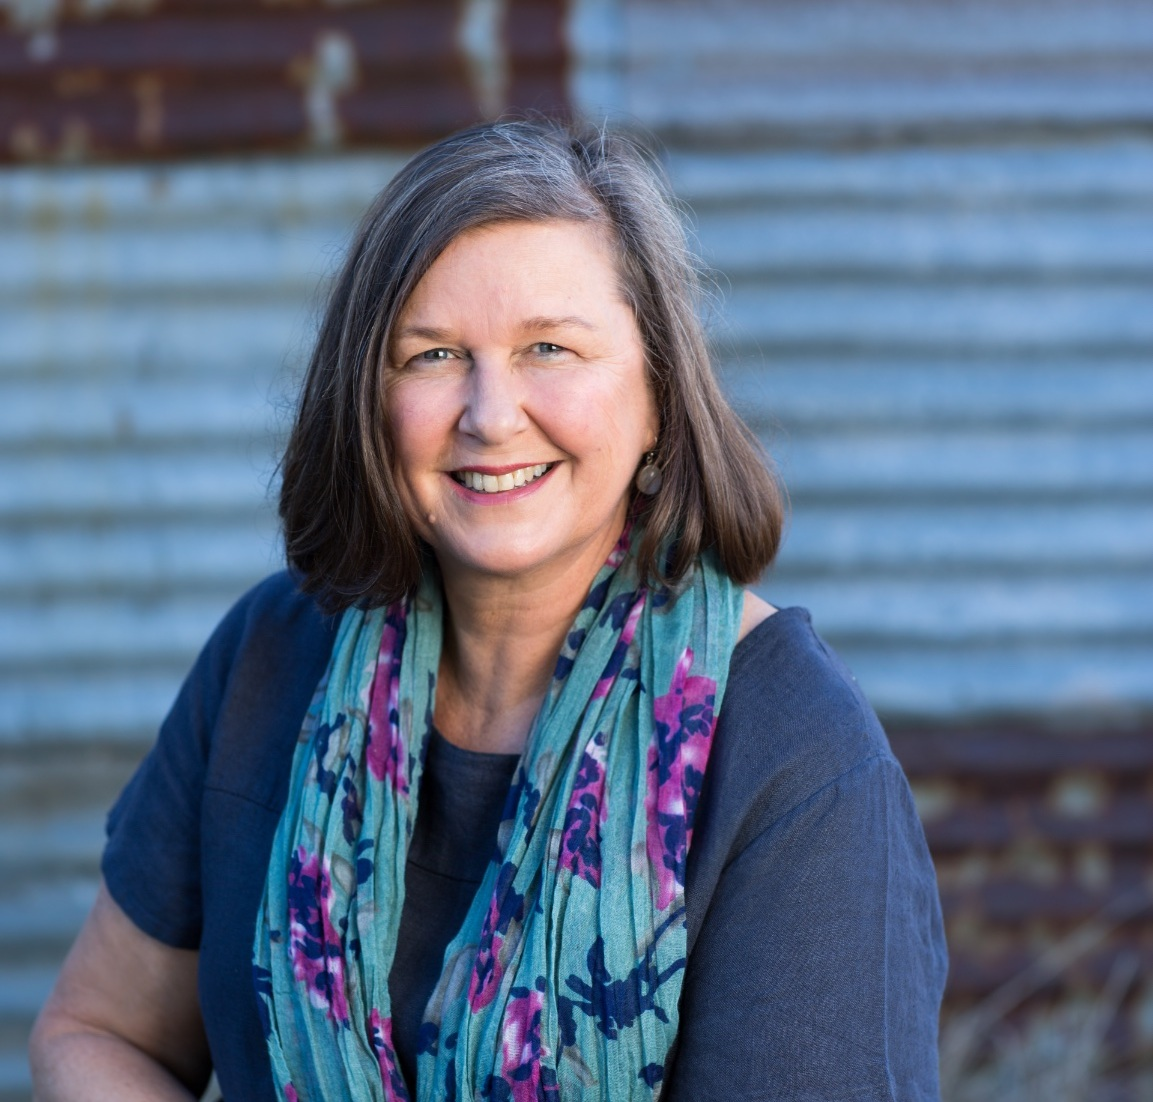 Fiona's Counselling Training - Diploma of Professional CounsellingSpecialist Course in Couples Therapy Relationships AustraliaEmotion Focused Couple Therapist Australian Centre for Emotionally Focused TherapyLevel 2 Training in Gottman Method Couples TherapyProfessional Affiliations: Level 2 Member Australian Counselling Association ICEEFT Member International Centre for Excellence in Emotionally Focused Therapy